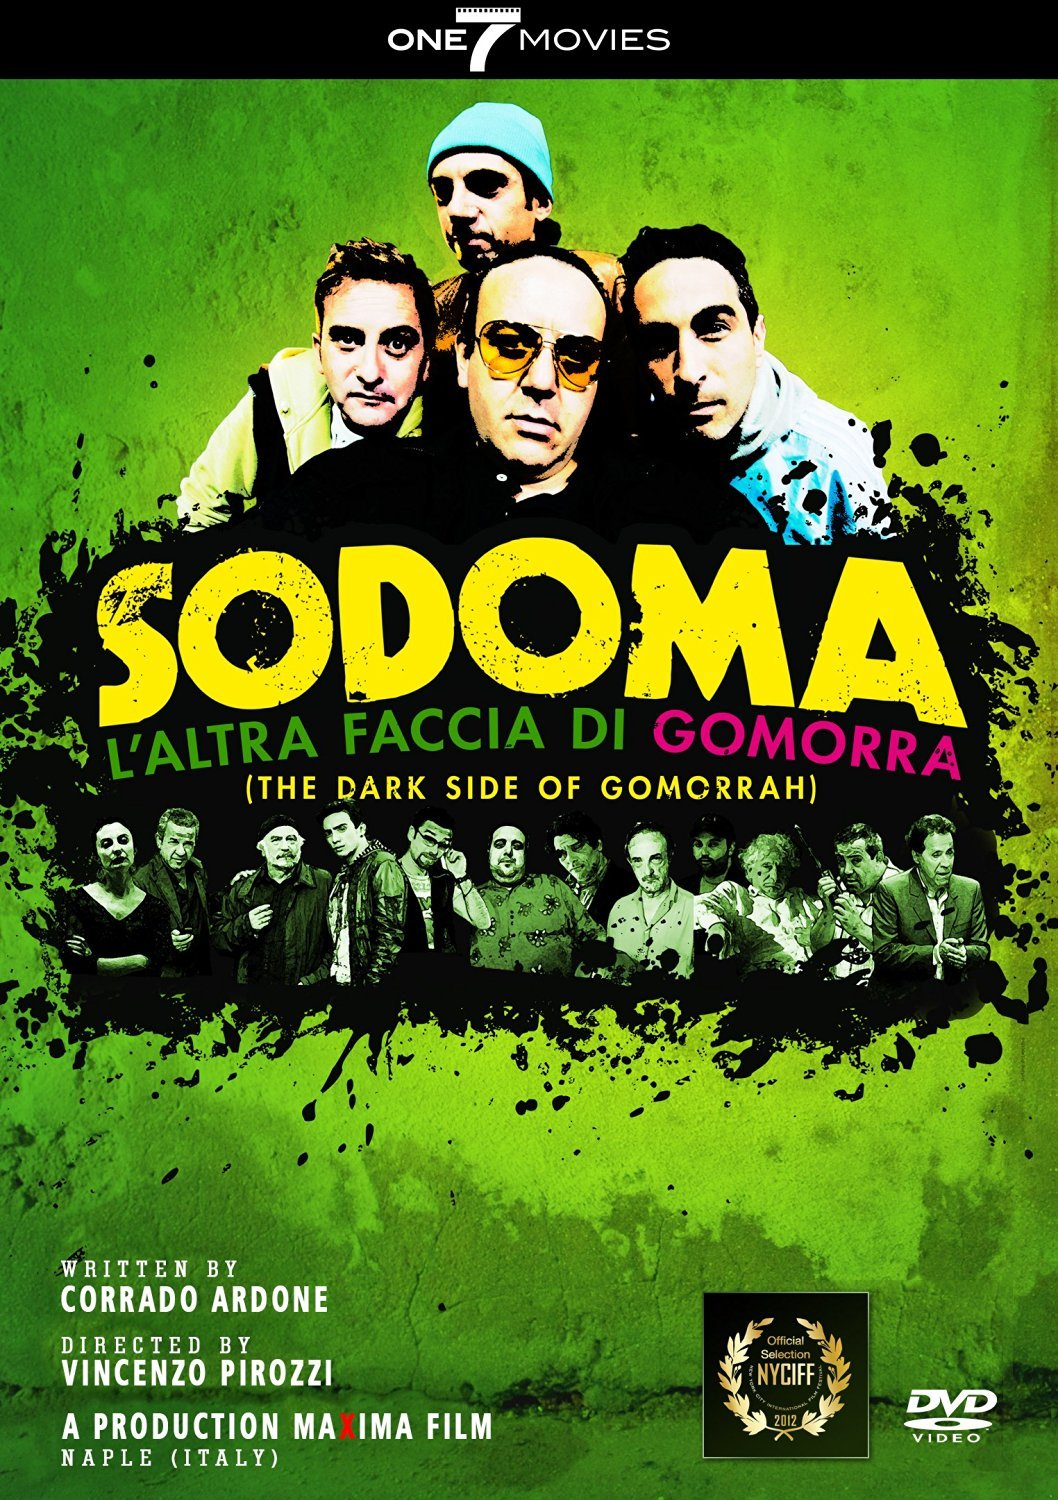 Sodoma... The Dark Side Of Gomorrah (DVD, 2012)